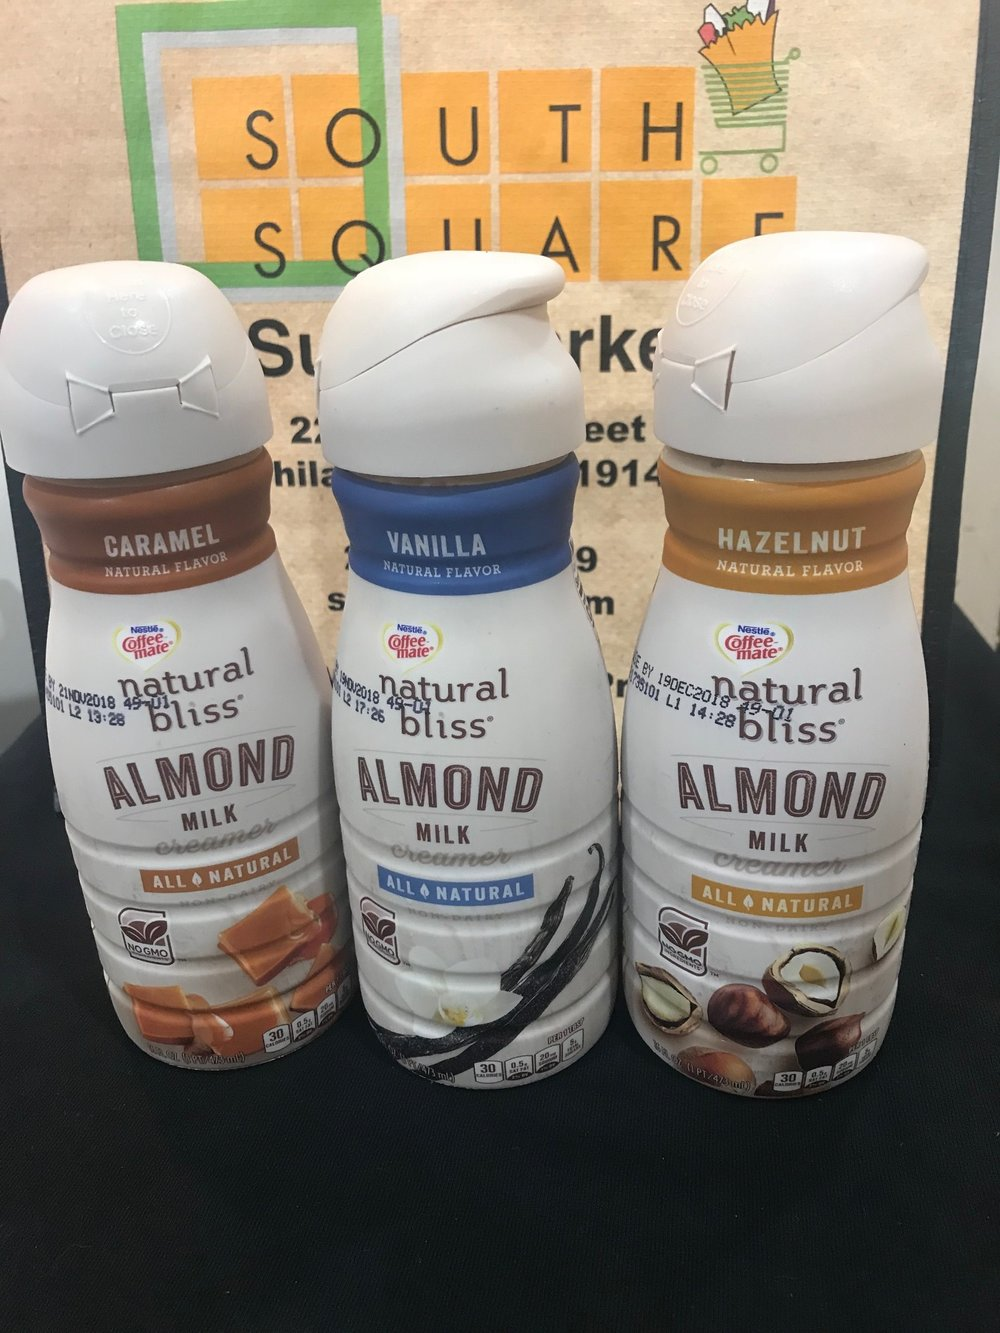 Almond Milk CoffeeMate